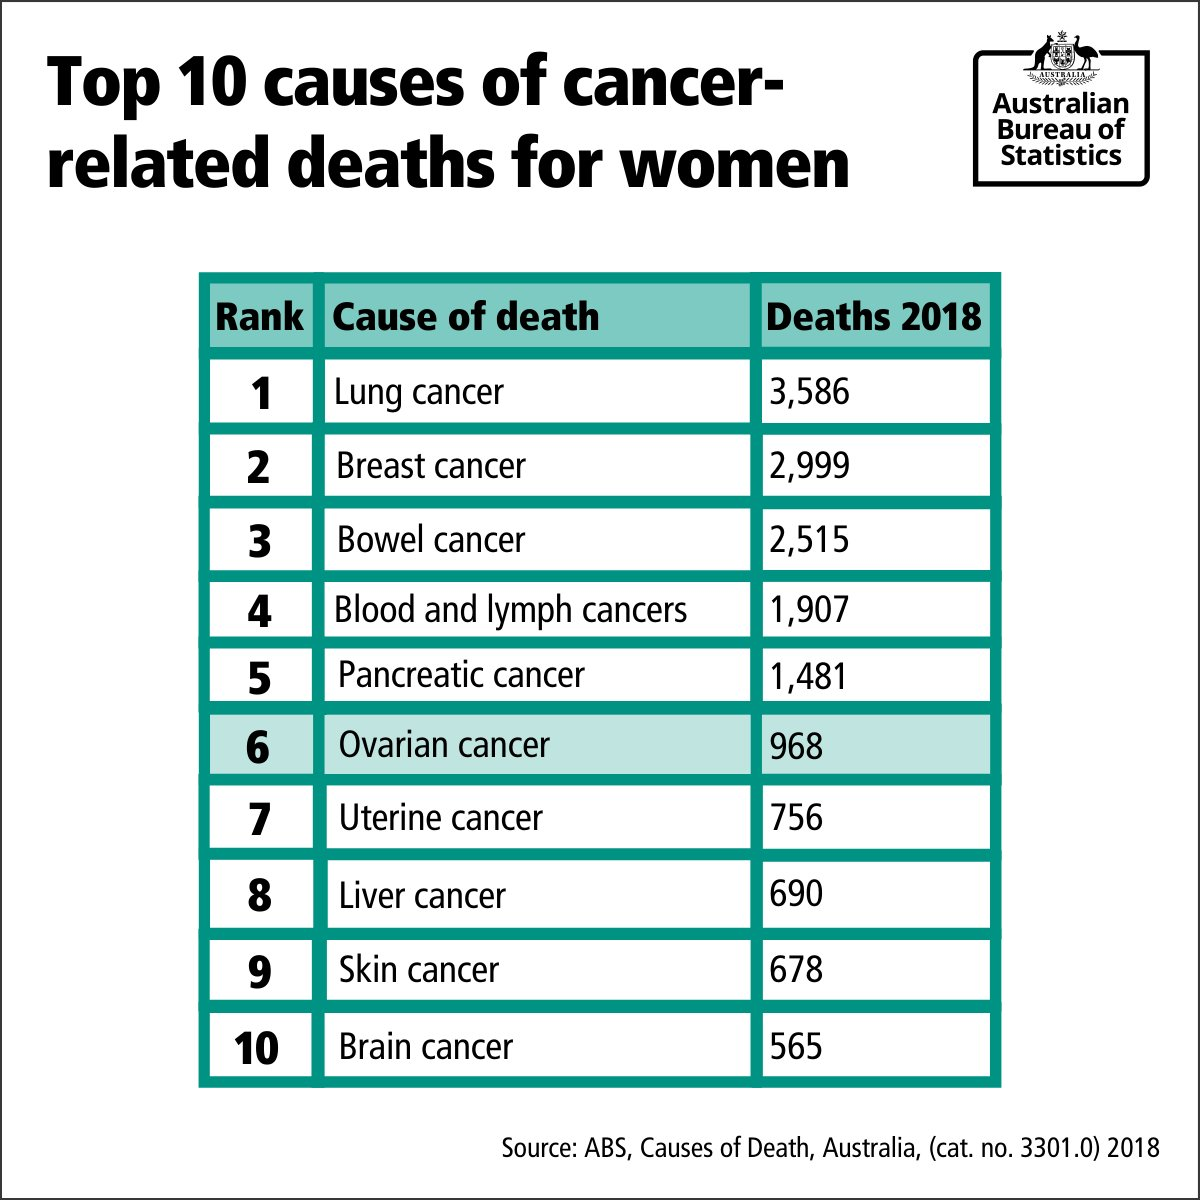 Australian Bureau Of Statistics On Twitter It S Ovarian Cancer Awareness Month And Today Is Tealribbonday In 2018 There Were 968 Deaths Caused By Ovarian Cancer Making It The 6th Leading Cause Of